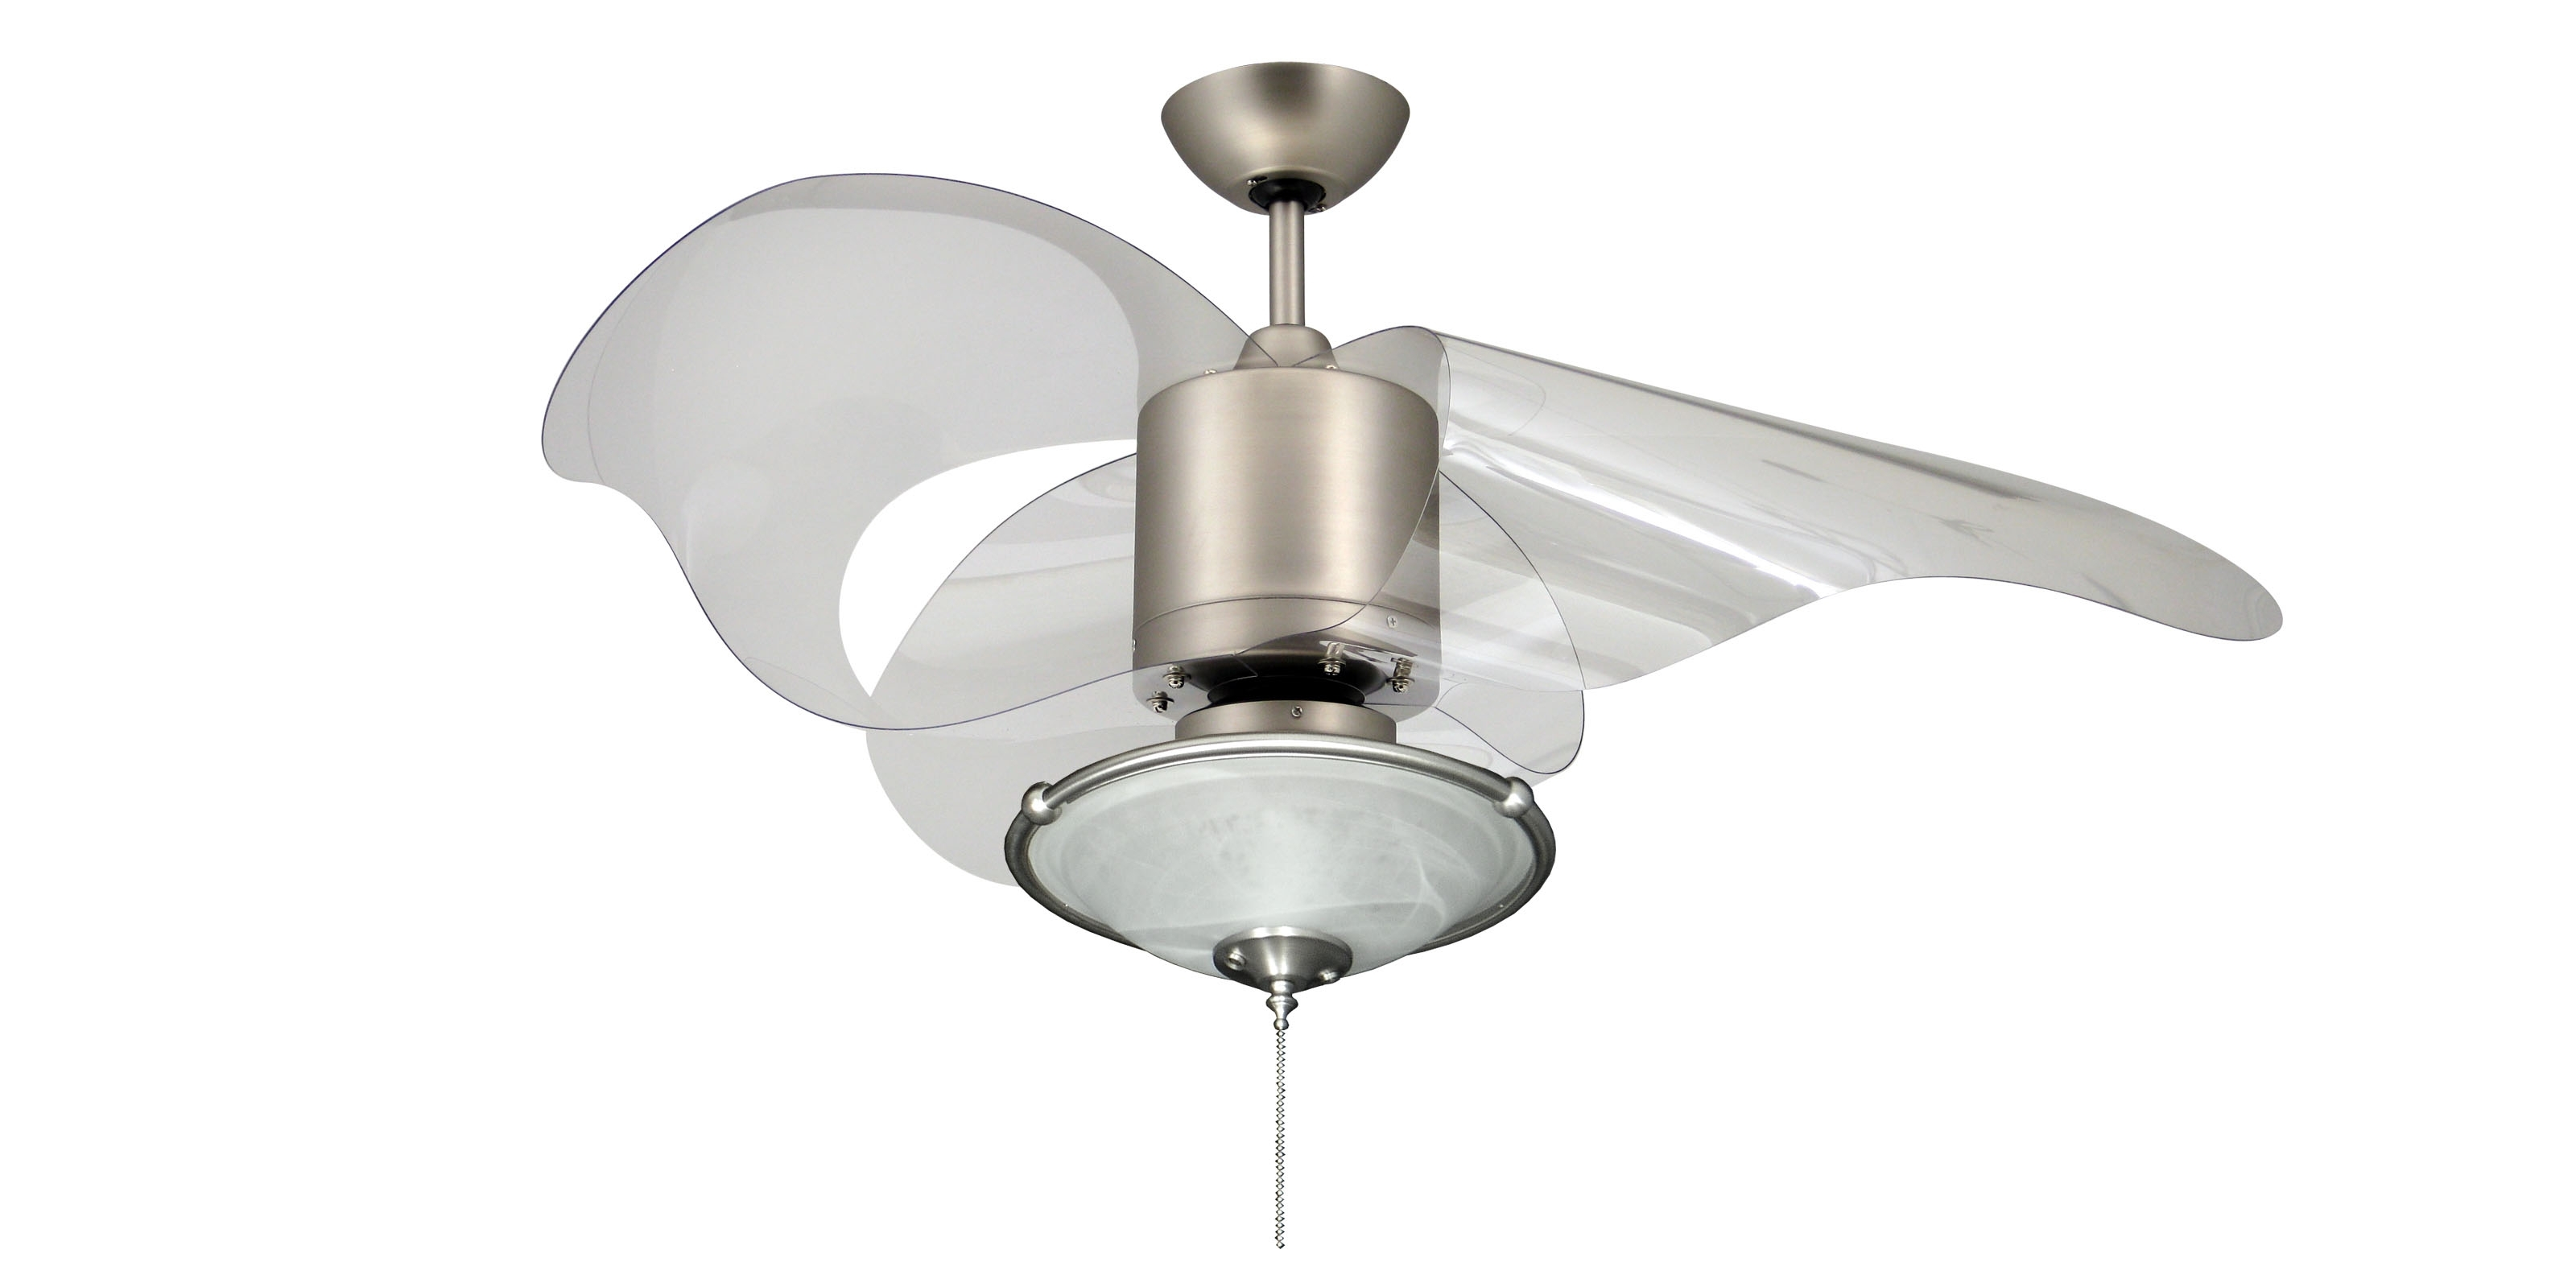 Unusual Ceiling Fans With Lights Ceiling Fans With Lights In Unusual Pertaining To 2019 Vertical Outdoor Ceiling Fans (Gallery 5 of 20)